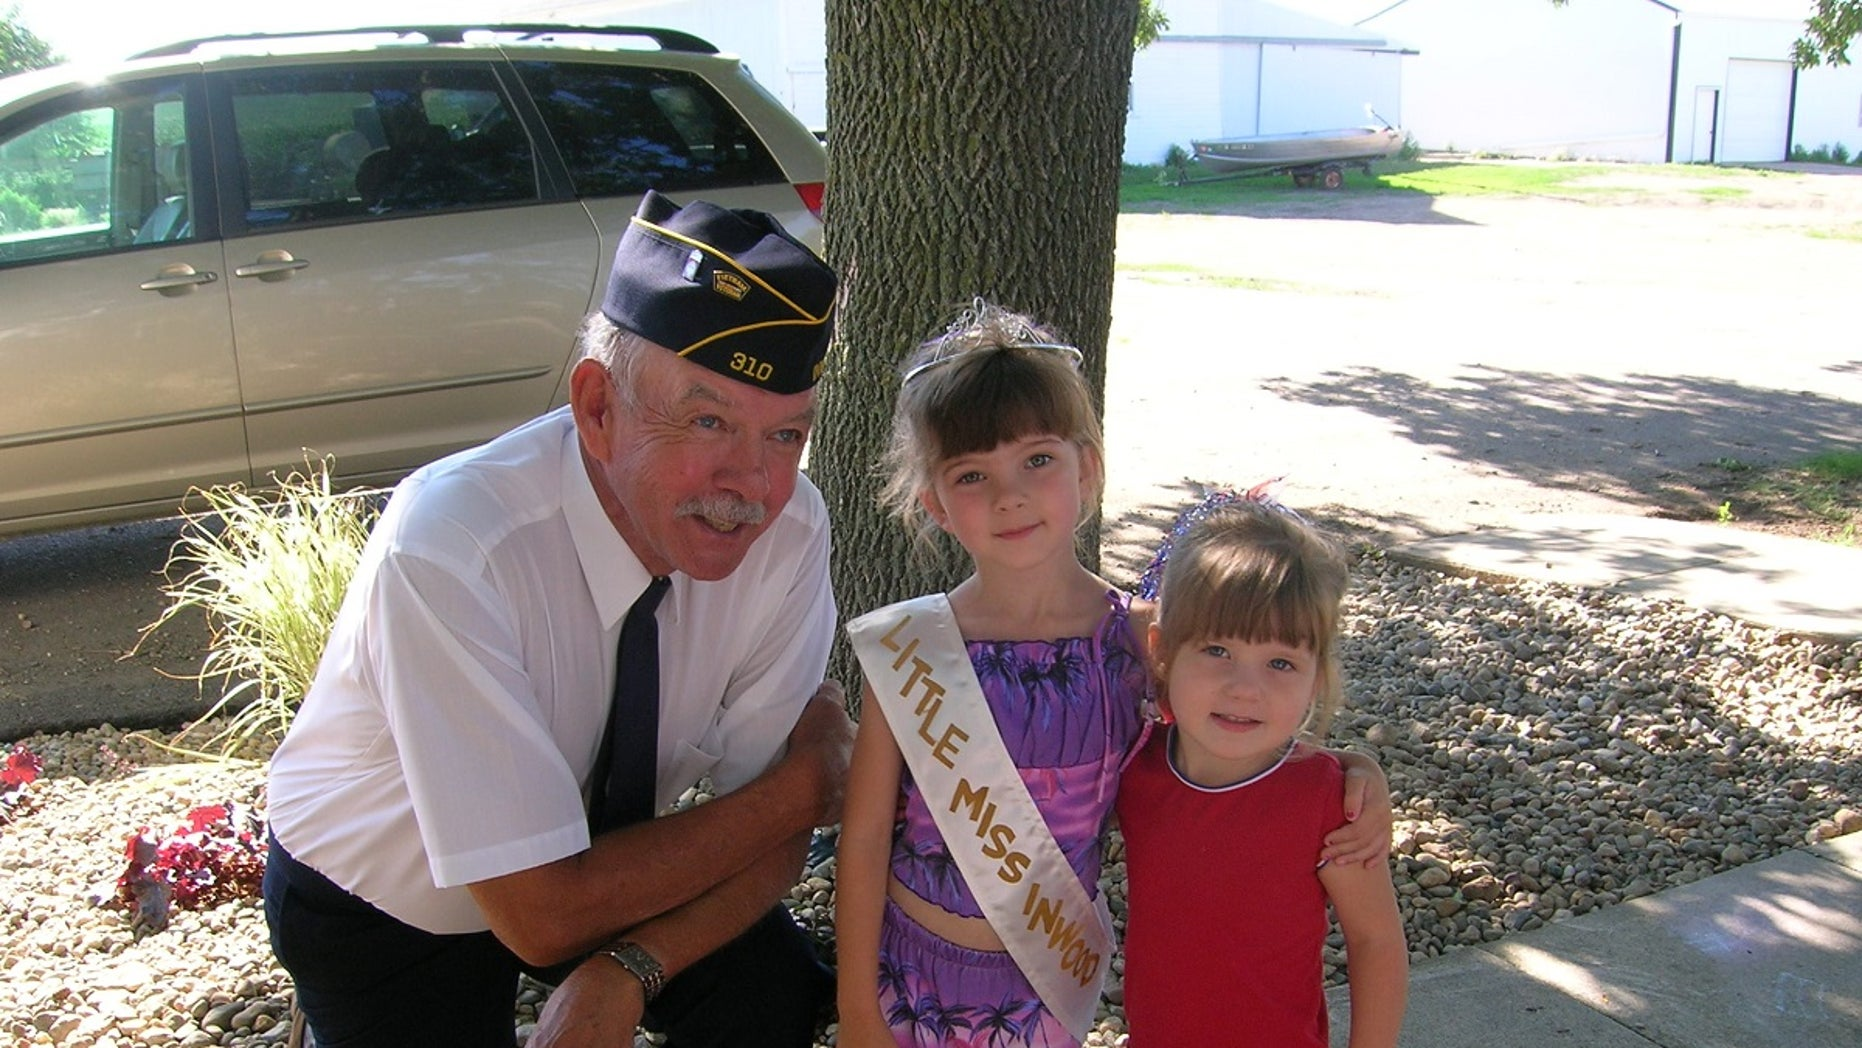 Paul and his granddaughters on the day of a Fourth of July parade.